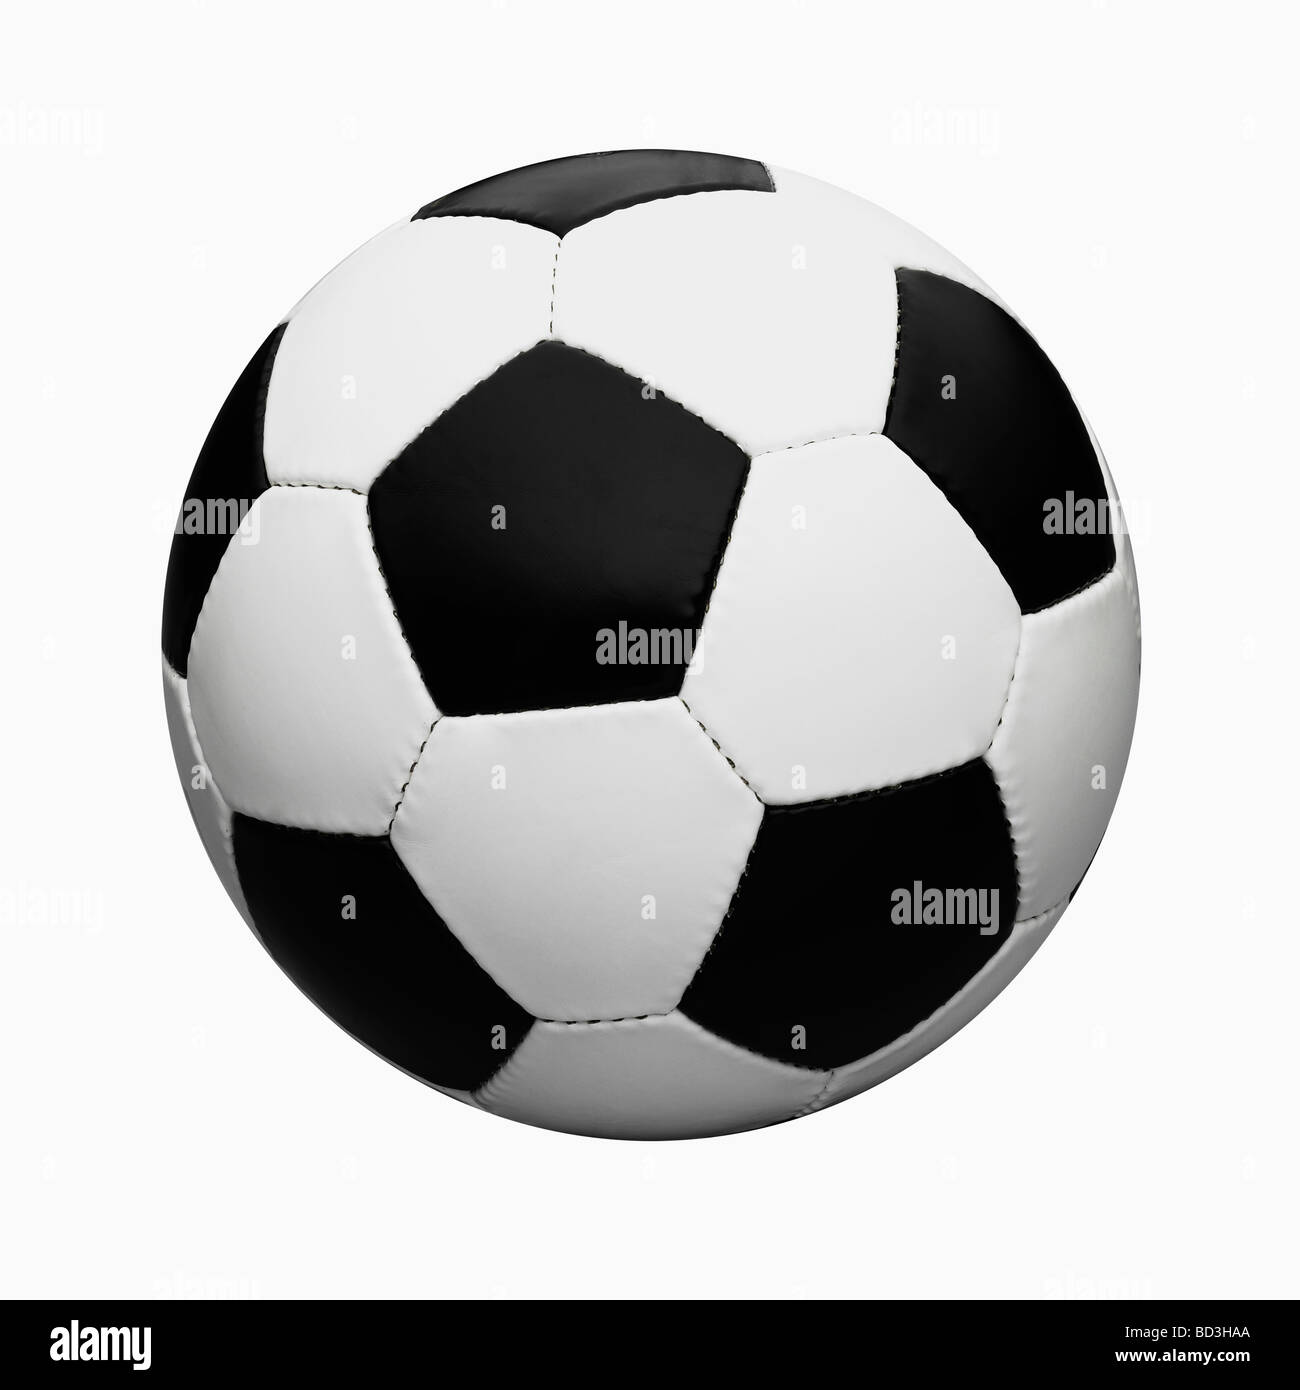 Black and White  Leather Football / Soccer Ball Cut Out On White Background. - Stock Image